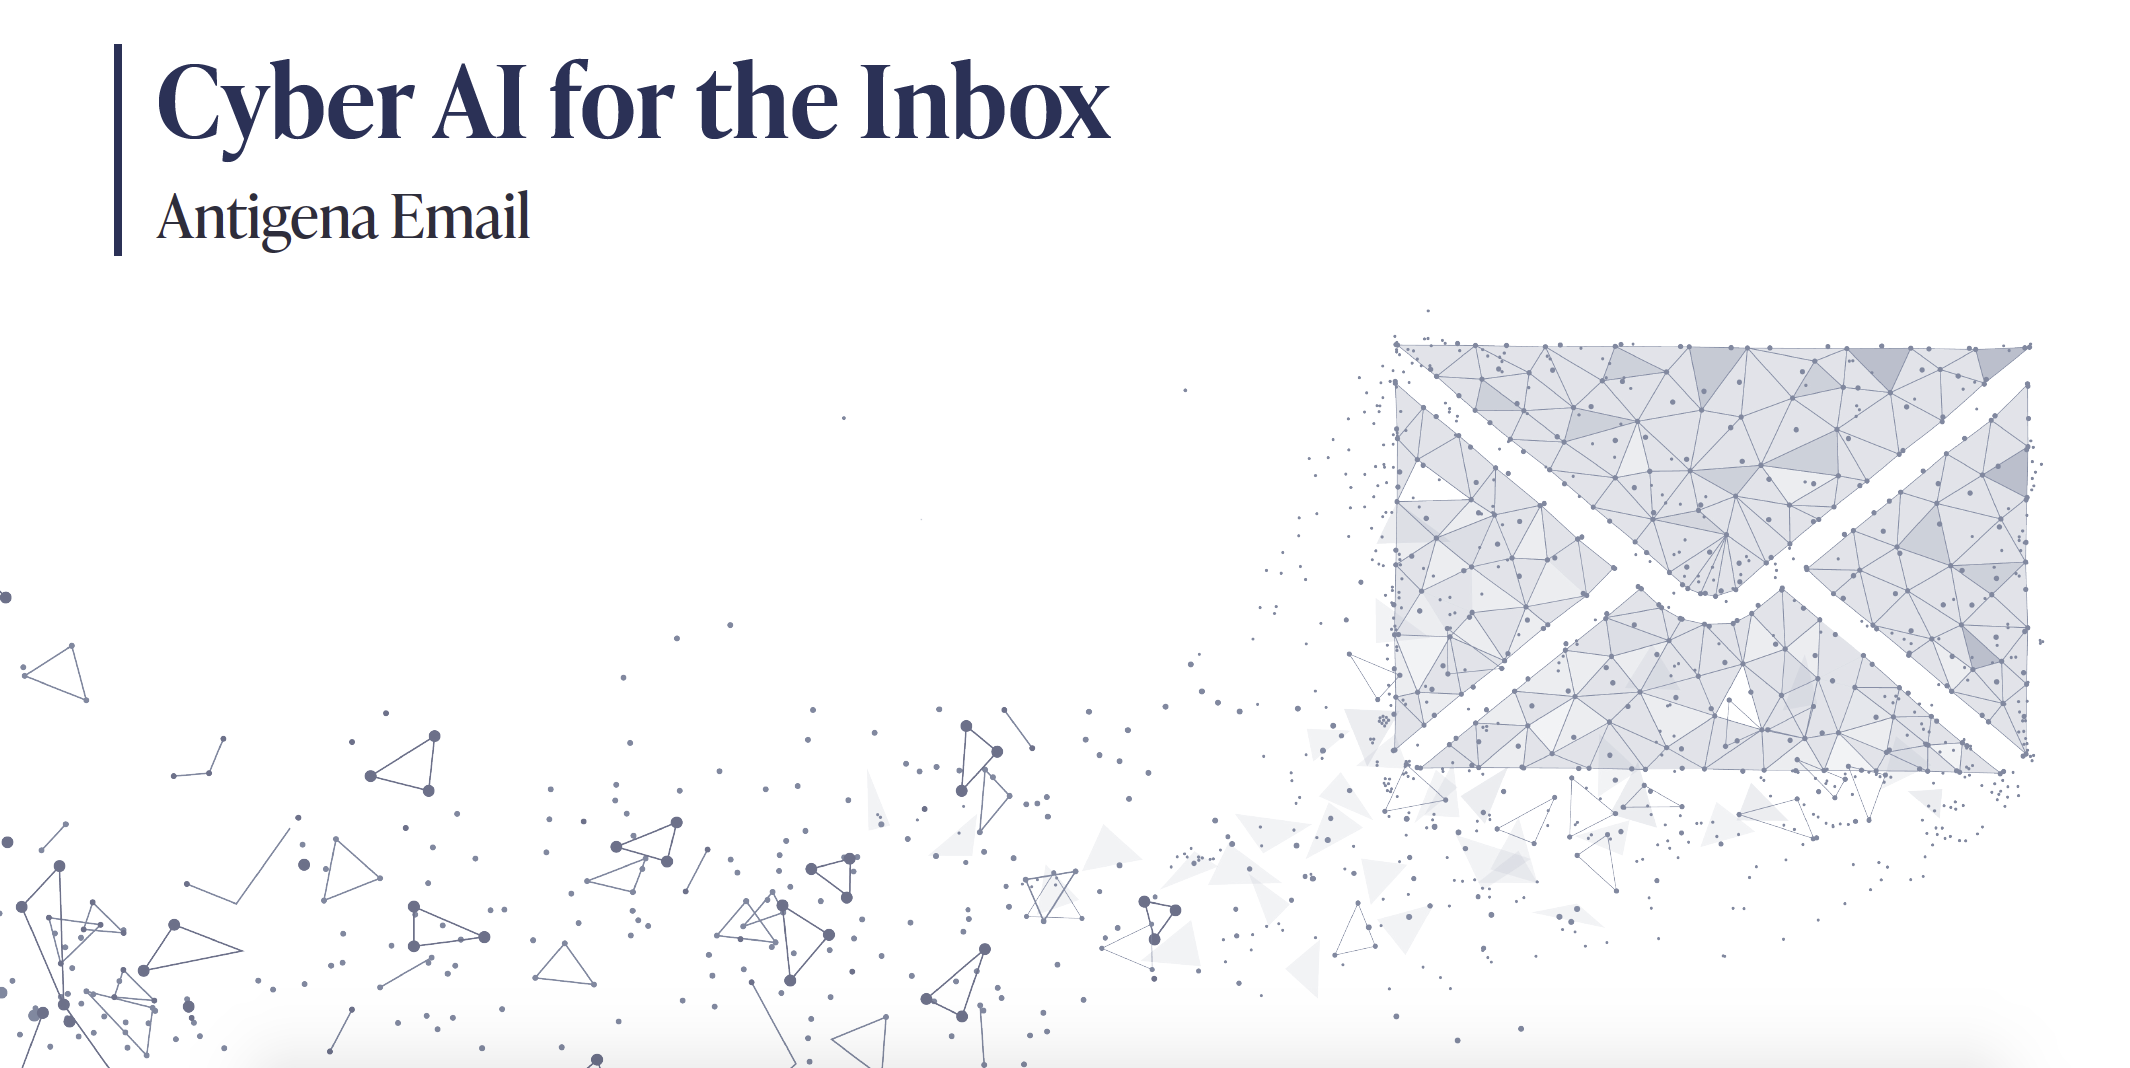 How AI Detect and Response to Email Inbox Cyber Attack